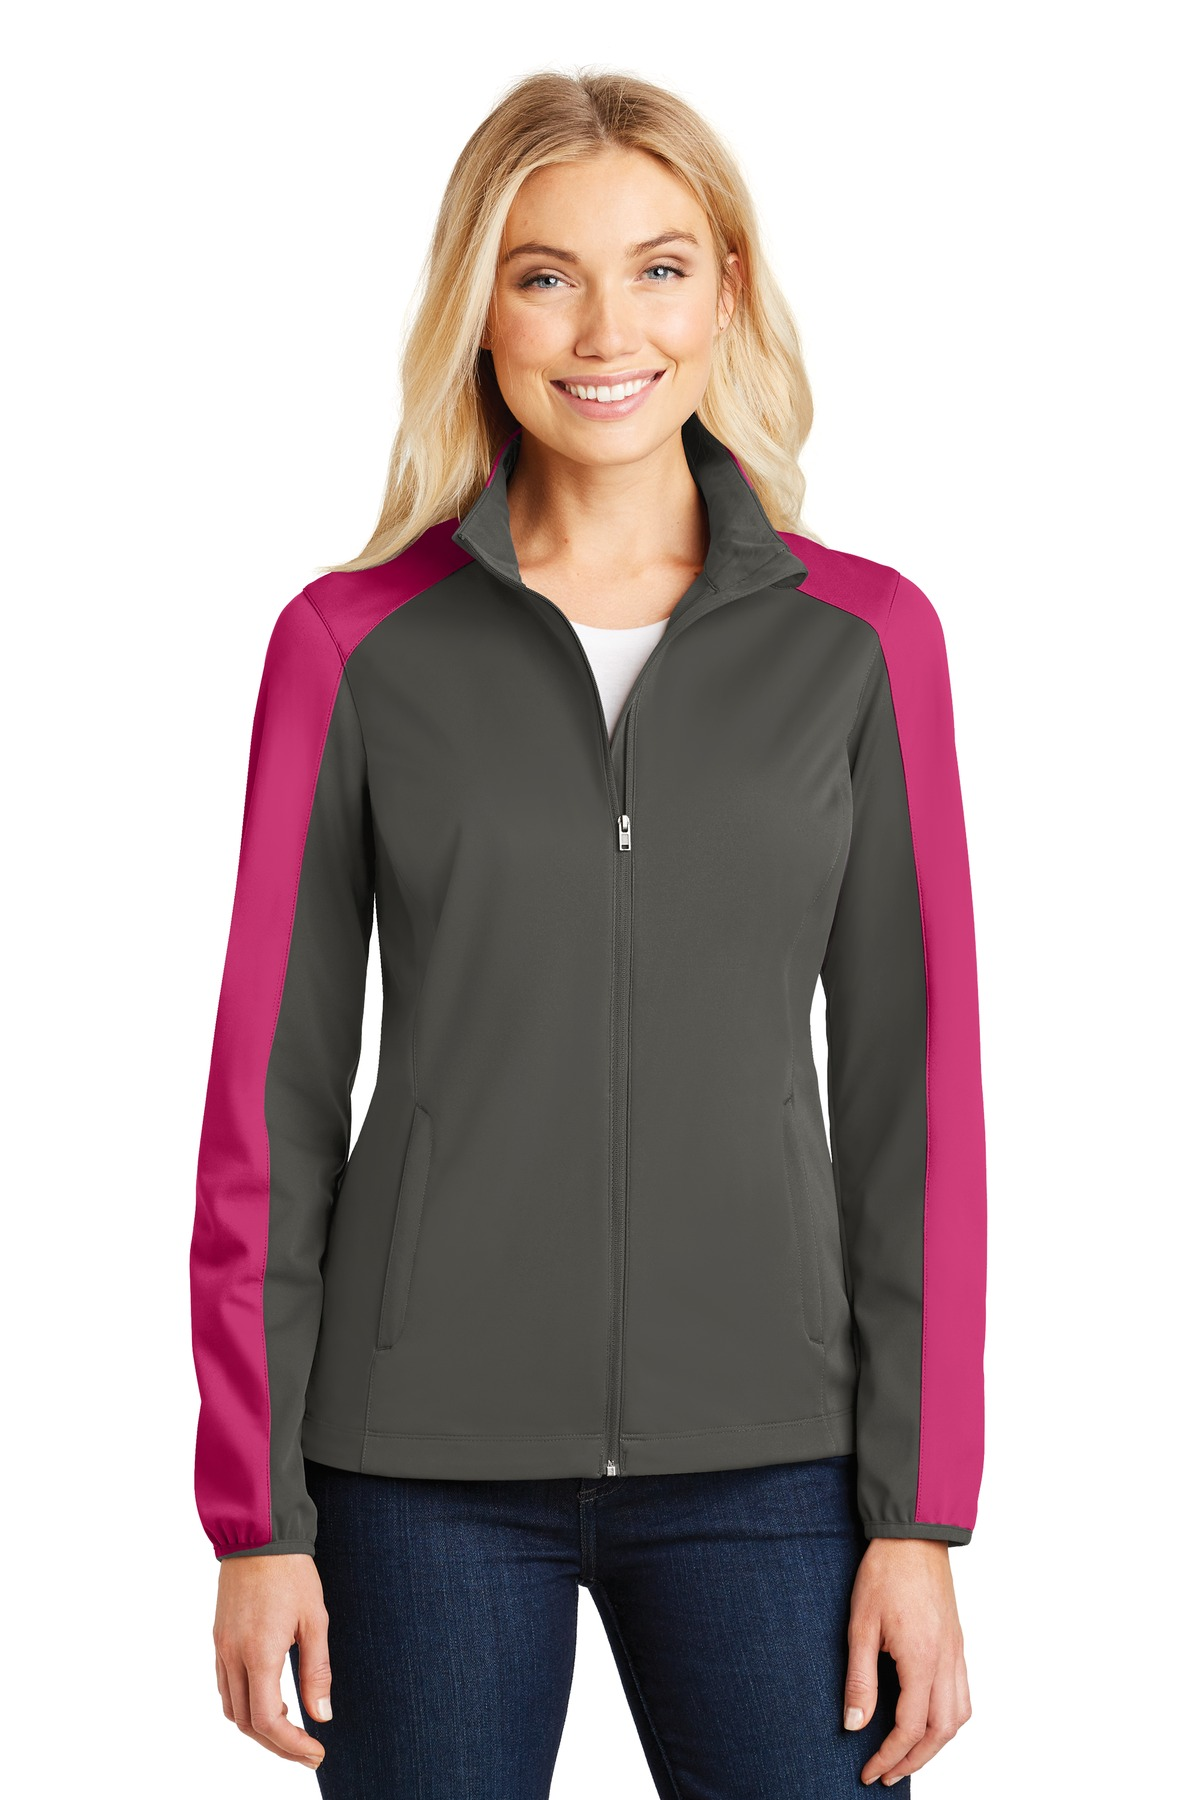 49b952f6988 Port Authority ® Ladies Active Colorblock Soft Shell Jacket. L718